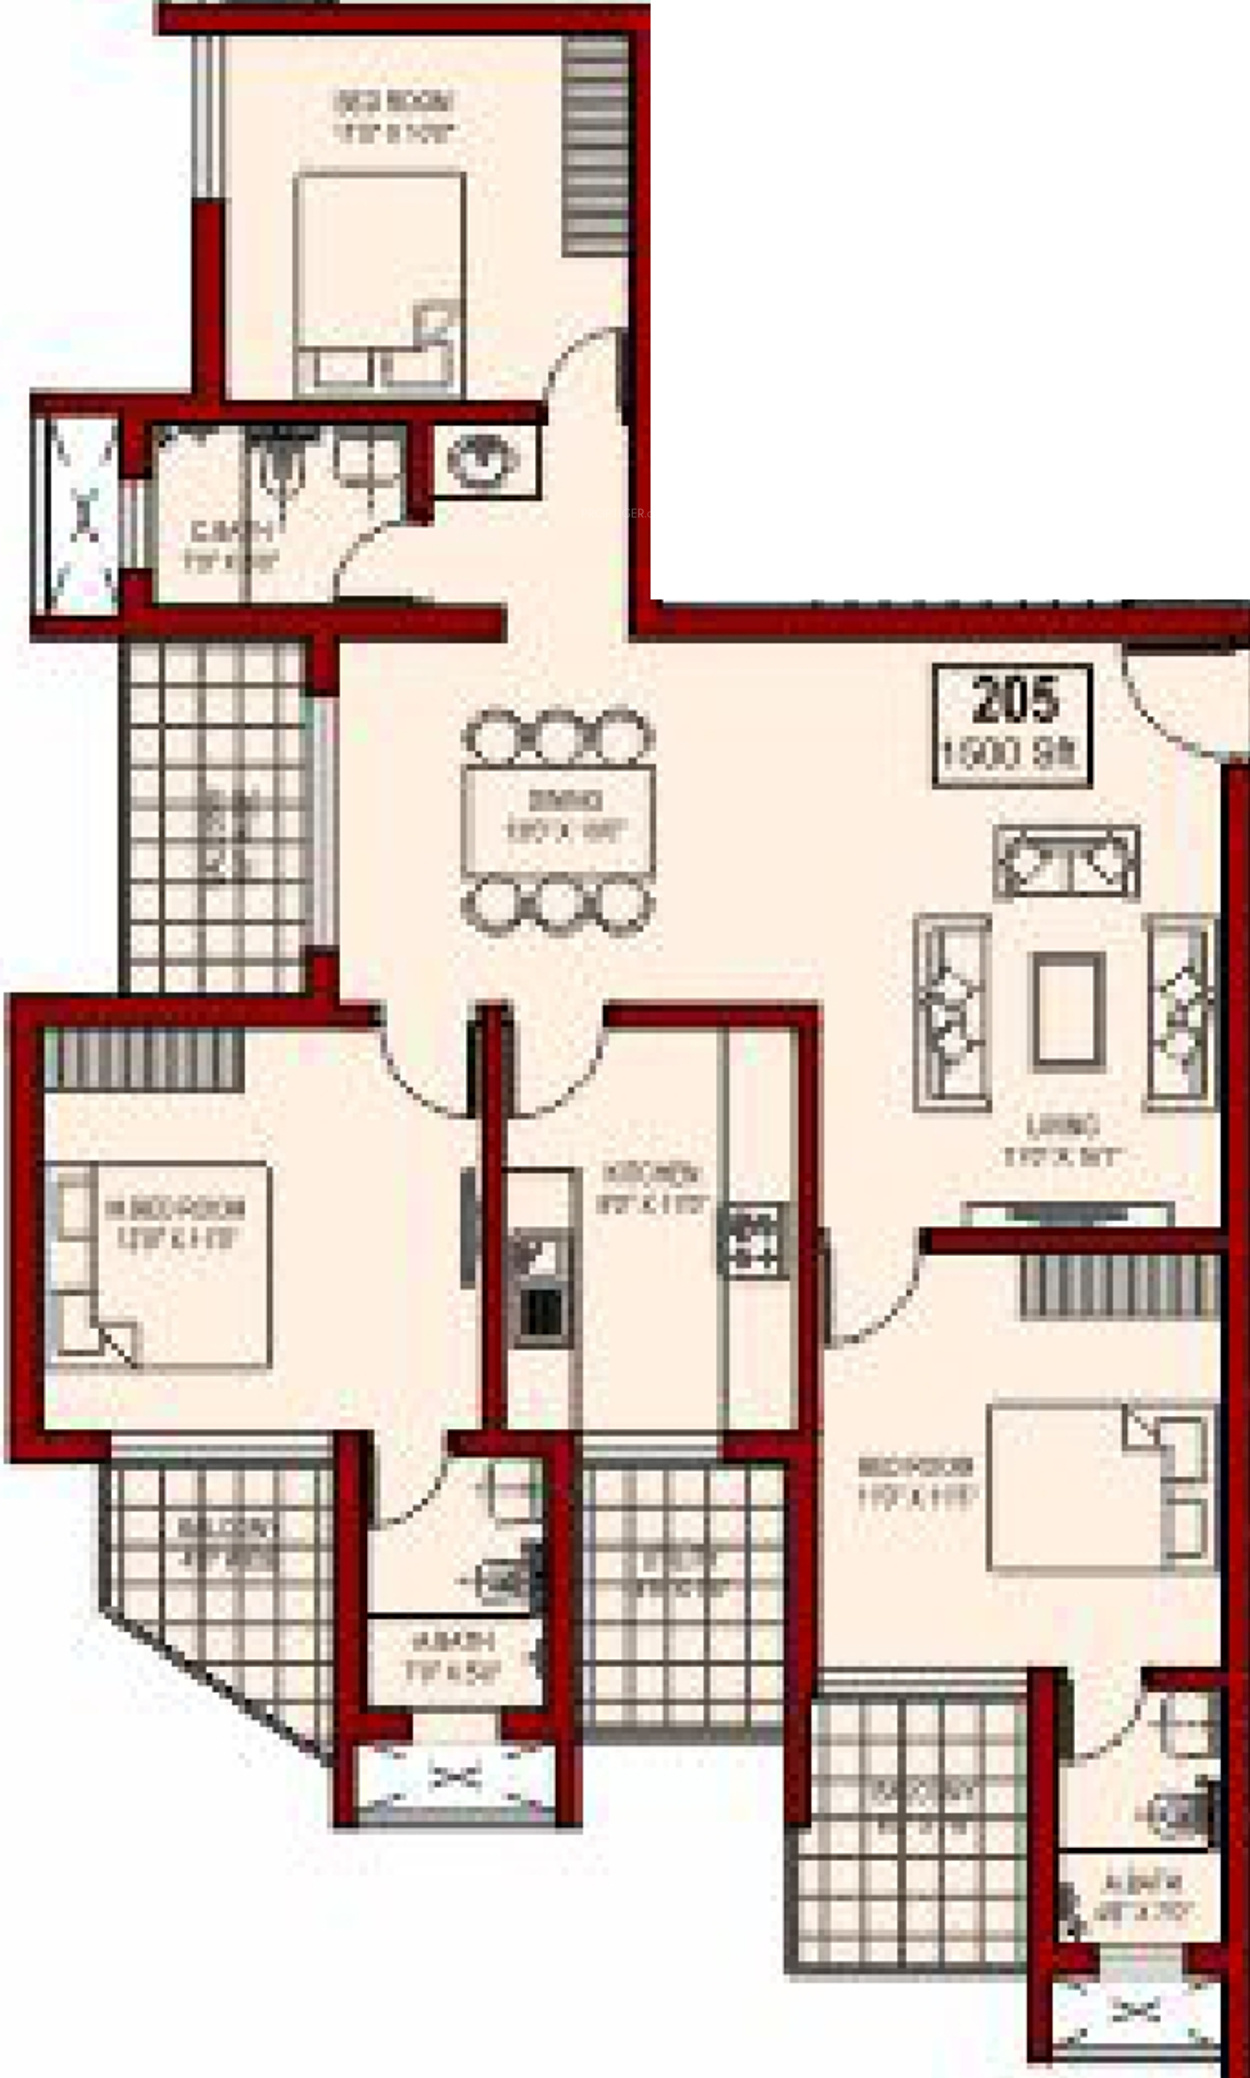 Sunshine palazzo in surathkal mangalore price location for Palazzo floor plan